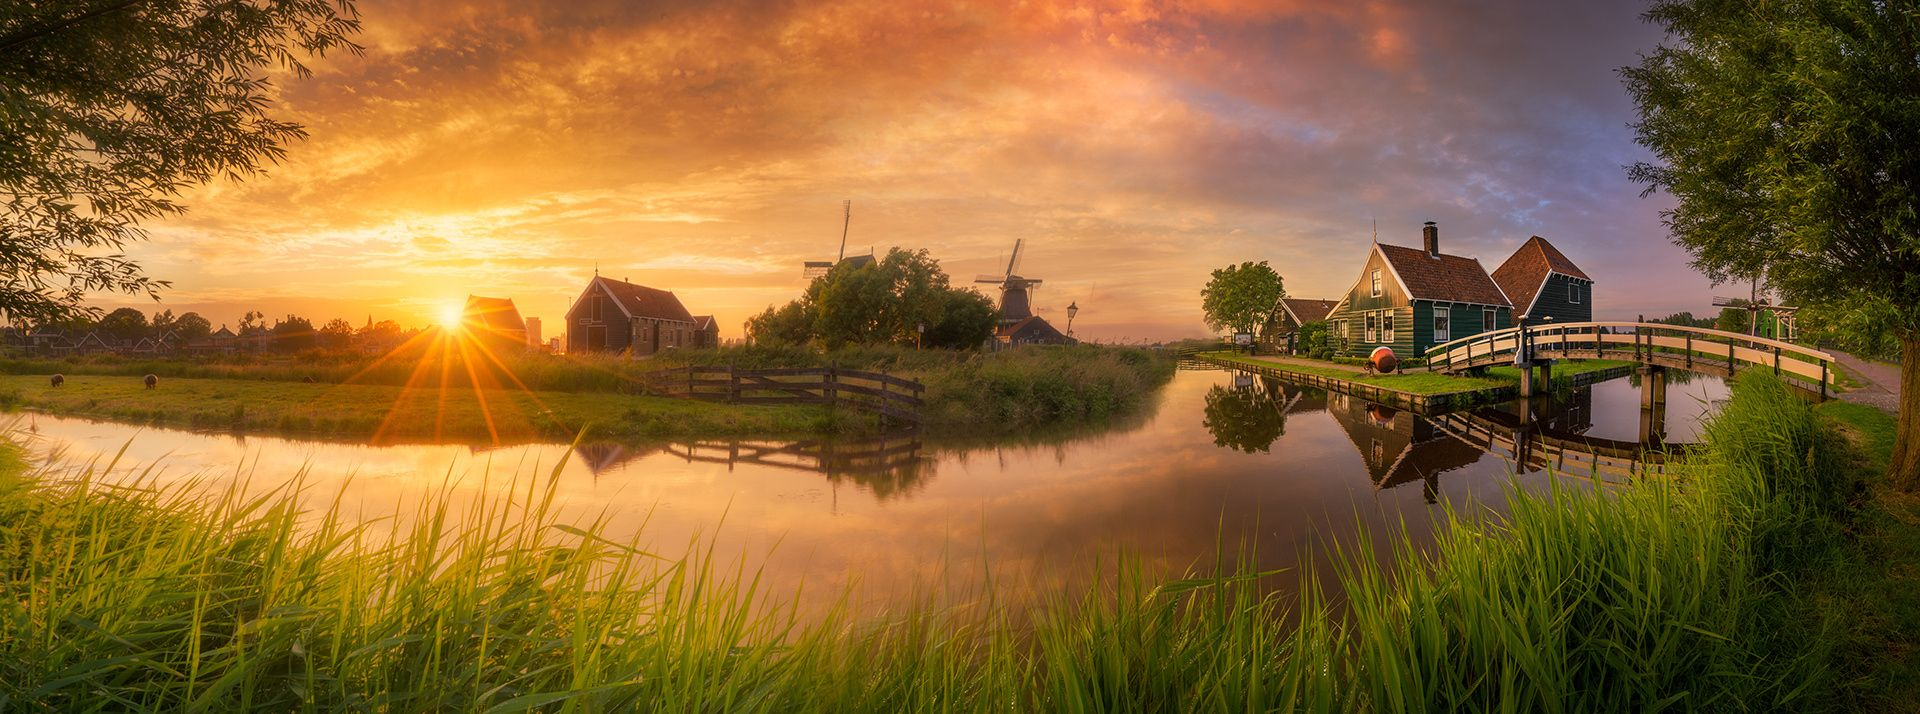 Fairytale - I almost never make wide panoramas, but I really liked this one :) Taken during a beautiful sunset in the Netherlands.